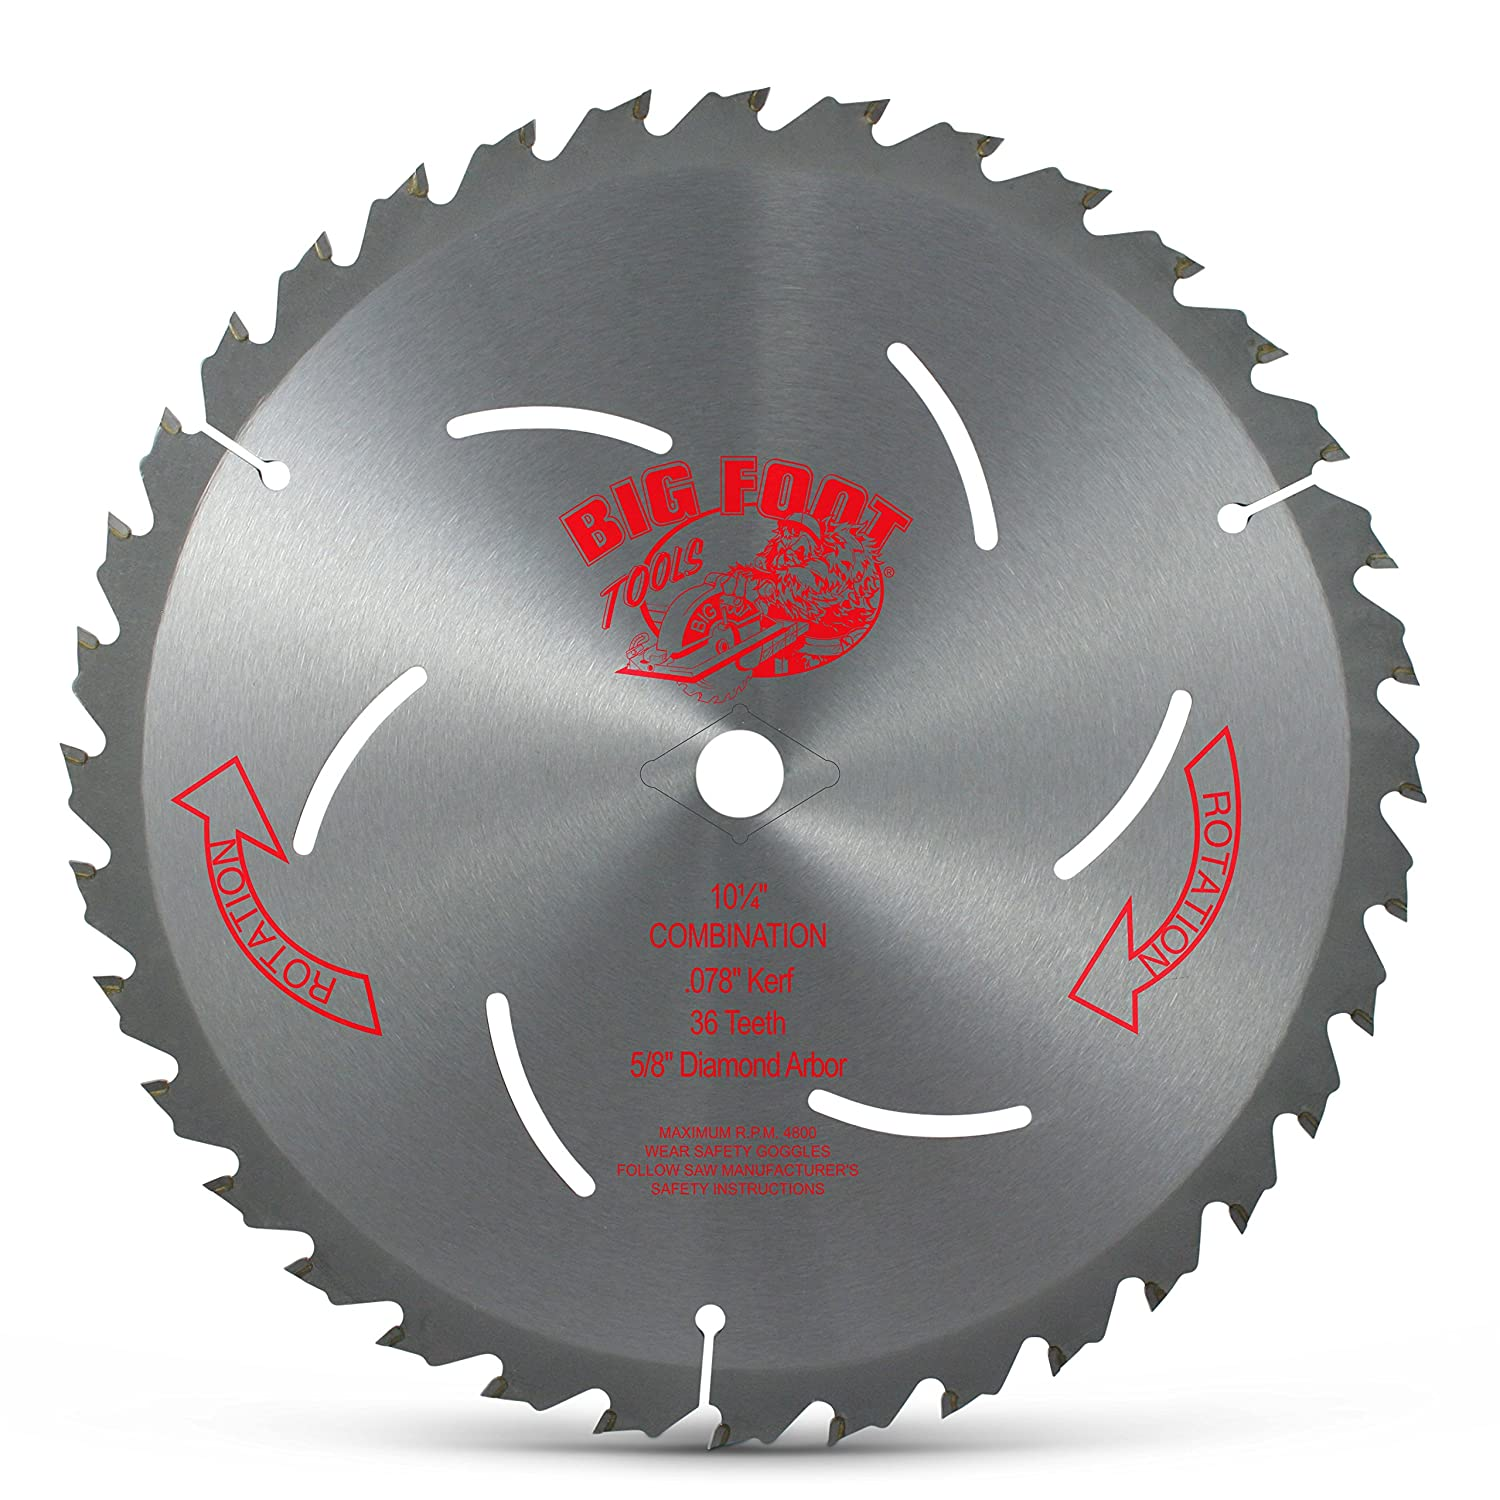 Big foot 10 14 36 tooth carbide tip blade miter saw blades big foot 10 14 36 tooth carbide tip blade miter saw blades amazon greentooth Image collections